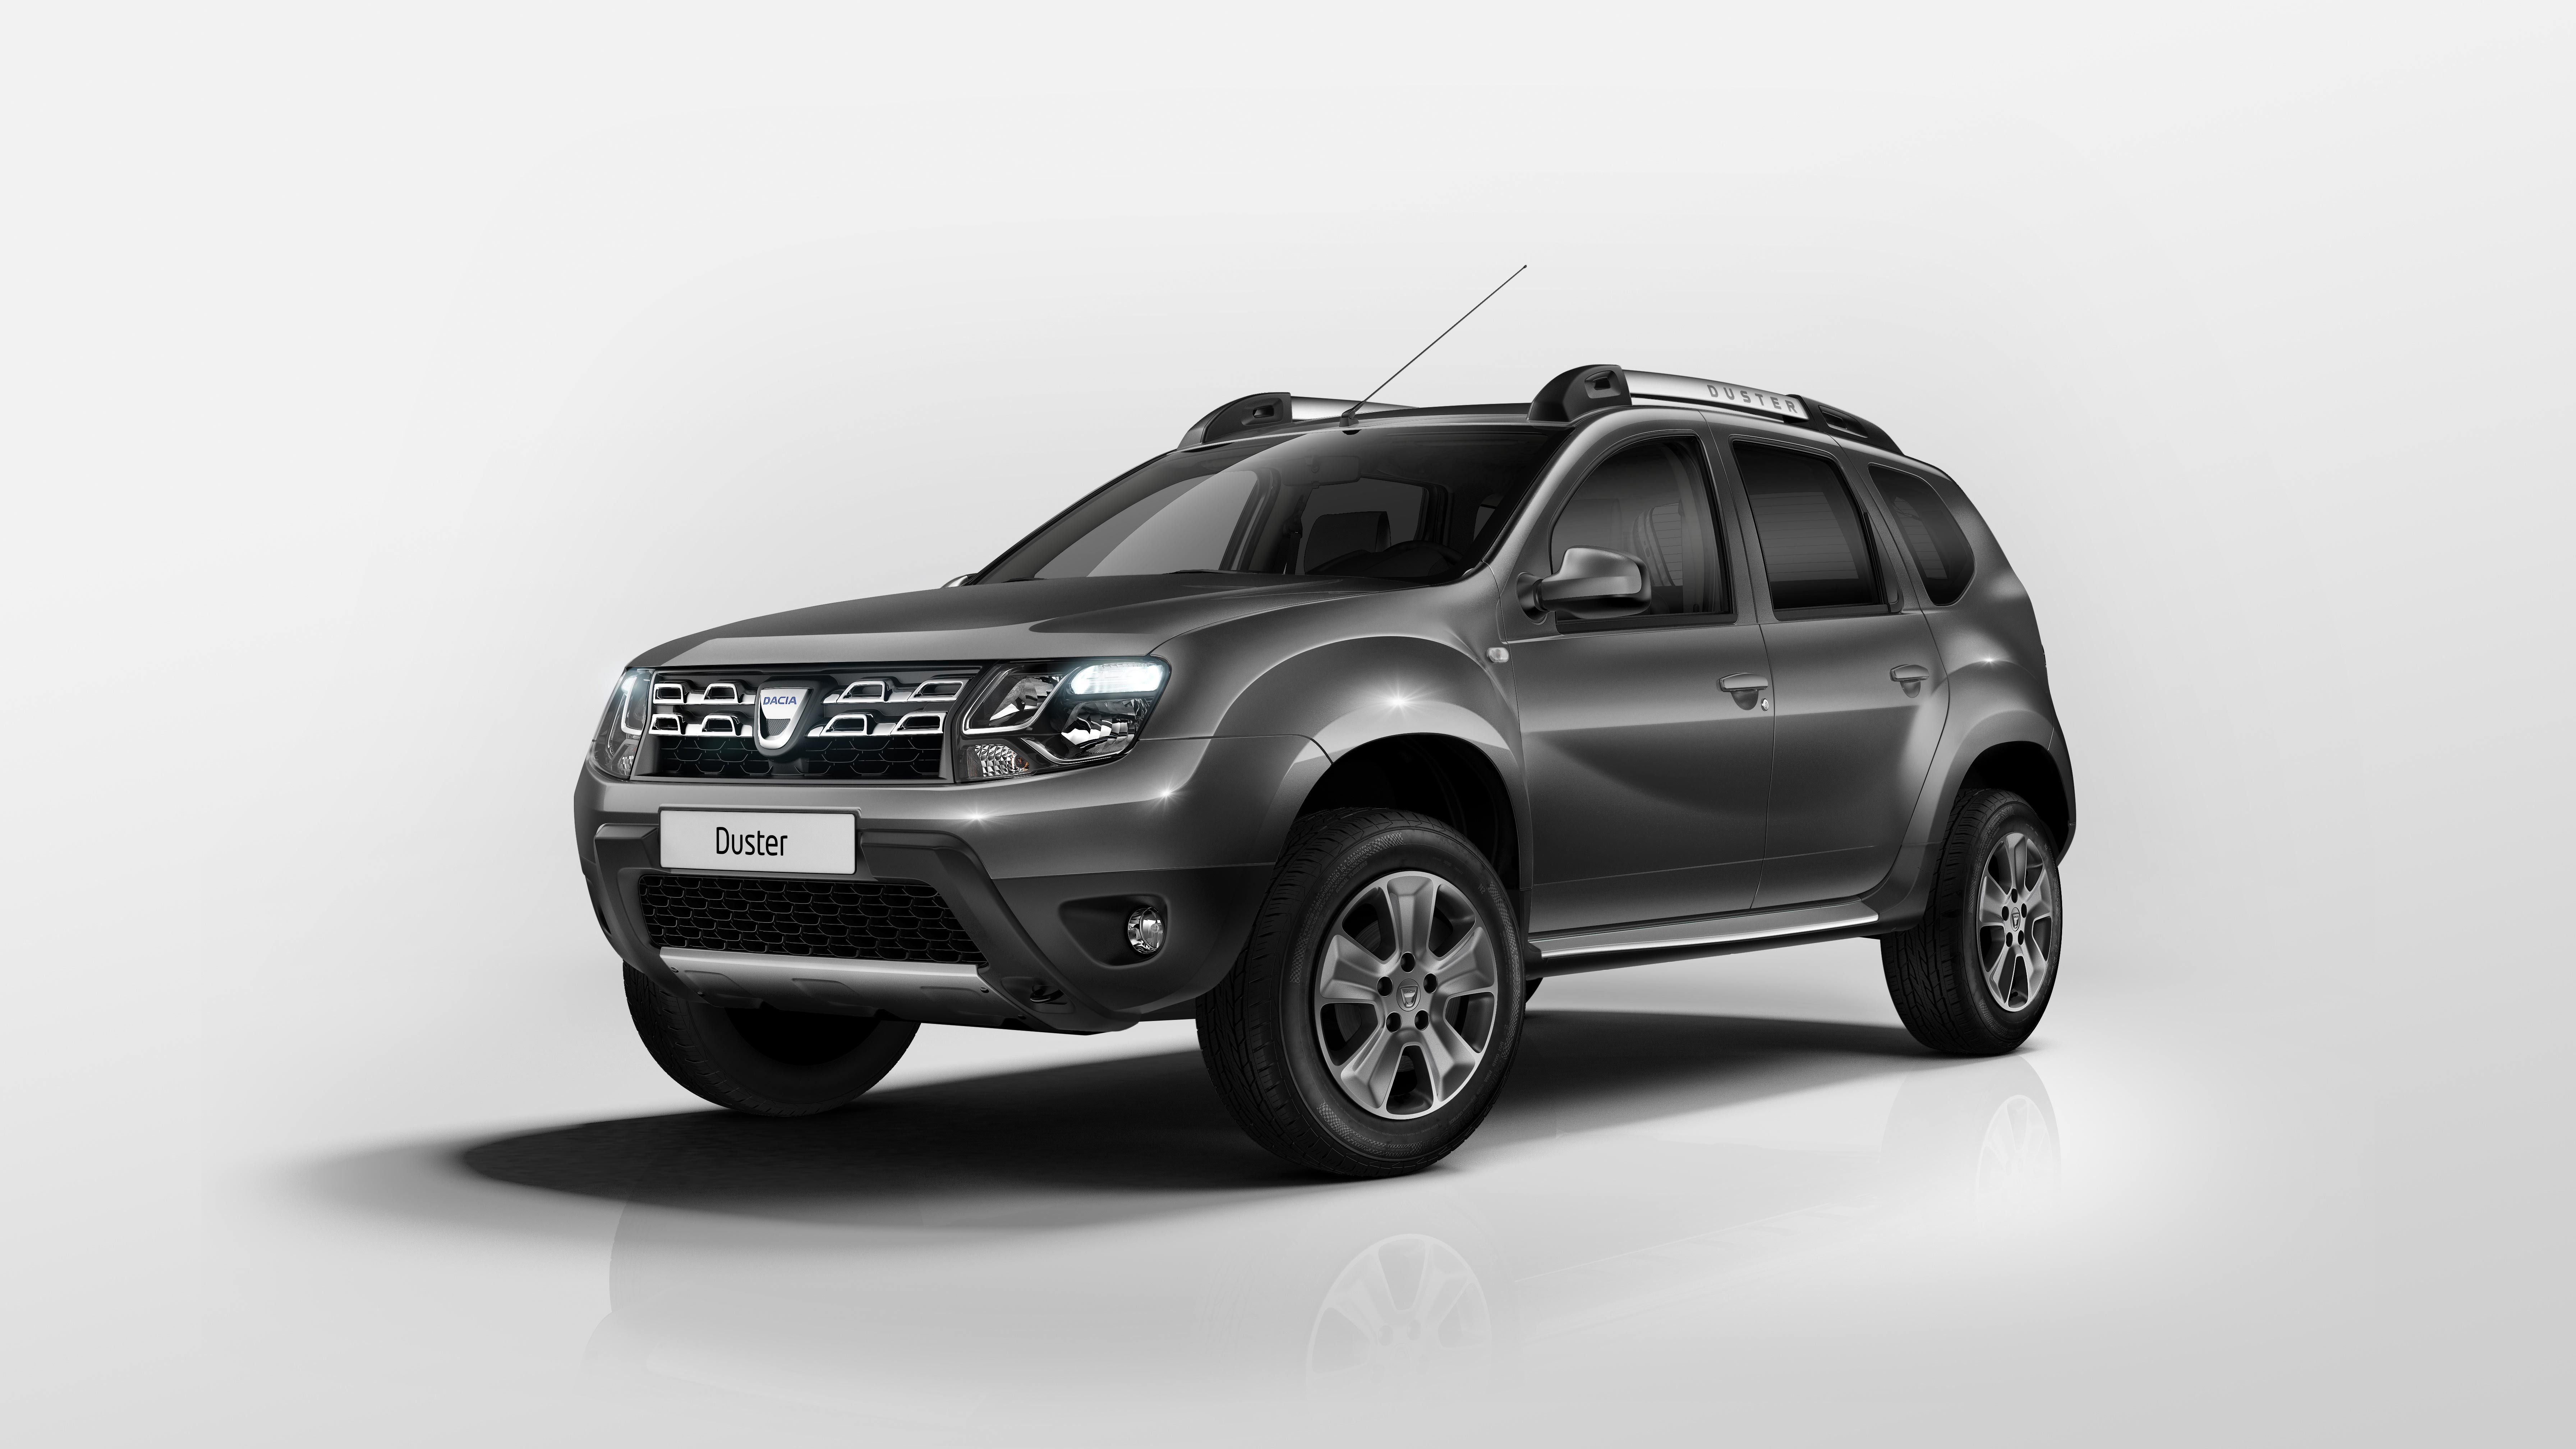 Renault dacia duster facelift has been revealed ahead of frankfurt debut duster facelift has new gront grille and wheels